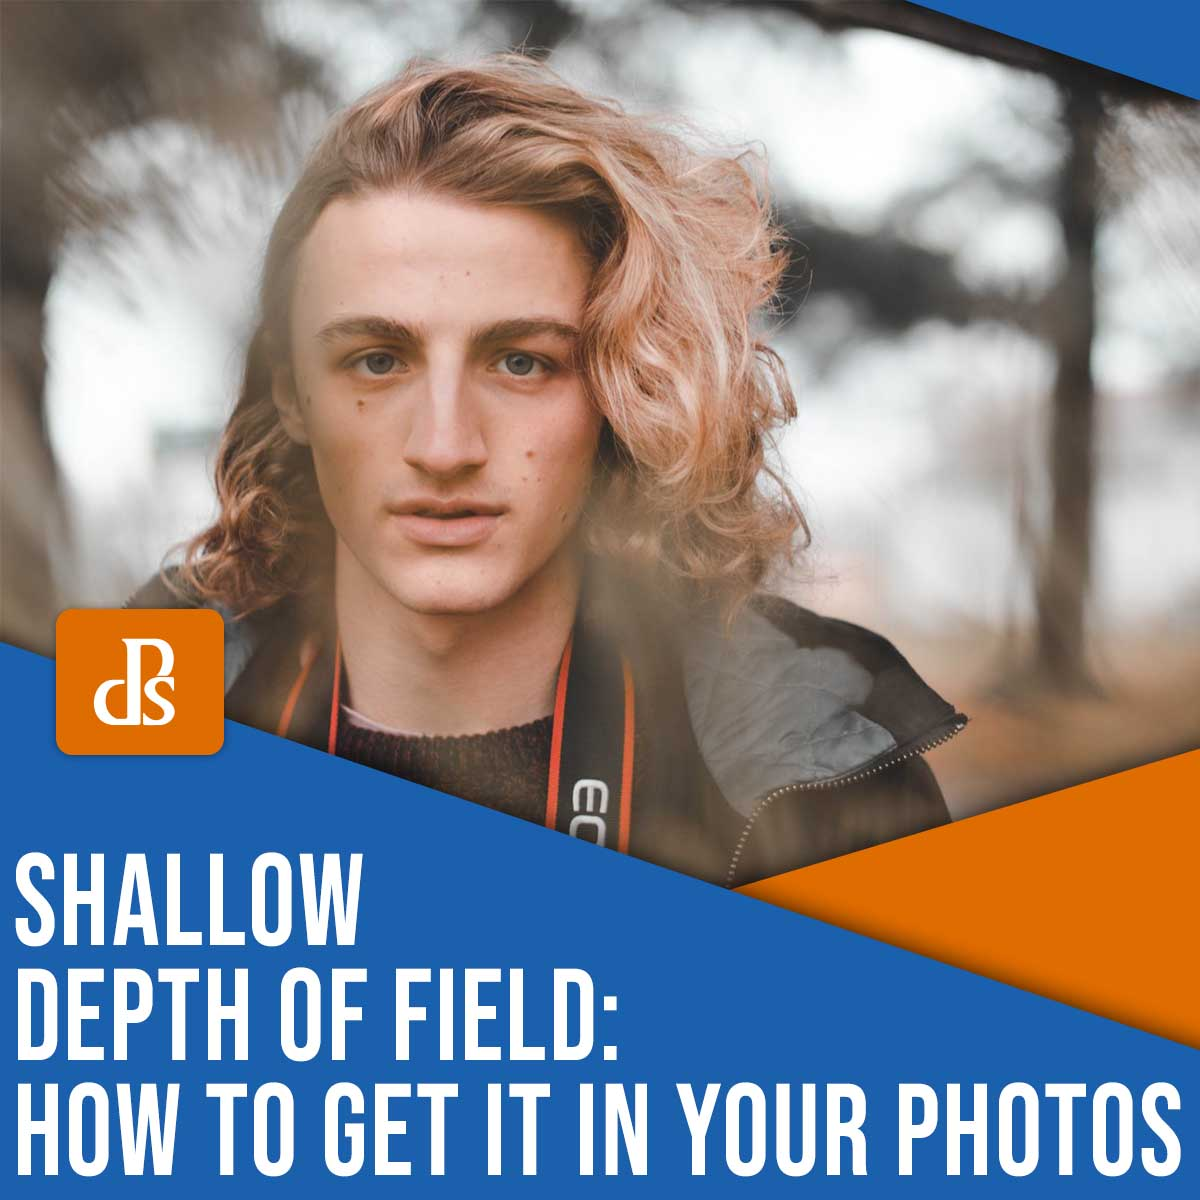 Shallow Depth of Field: How to Get It in Your Photos (5 Easy Ways)